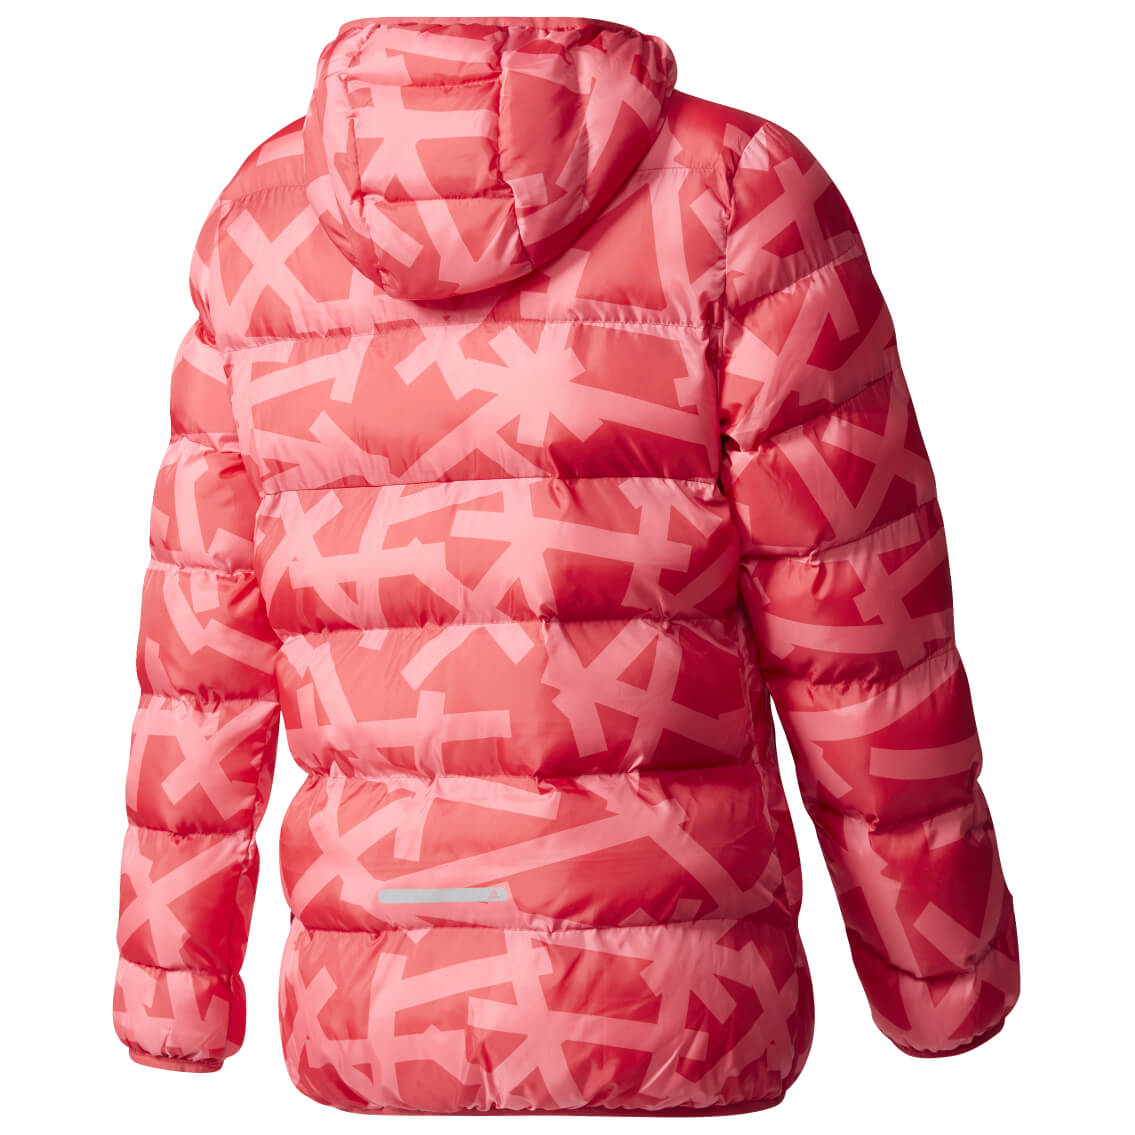 Invernale Bts Giacca Adidas Jacket Synthetic Down Acquista Gzqf4ew Bimba 1RRTn7qf